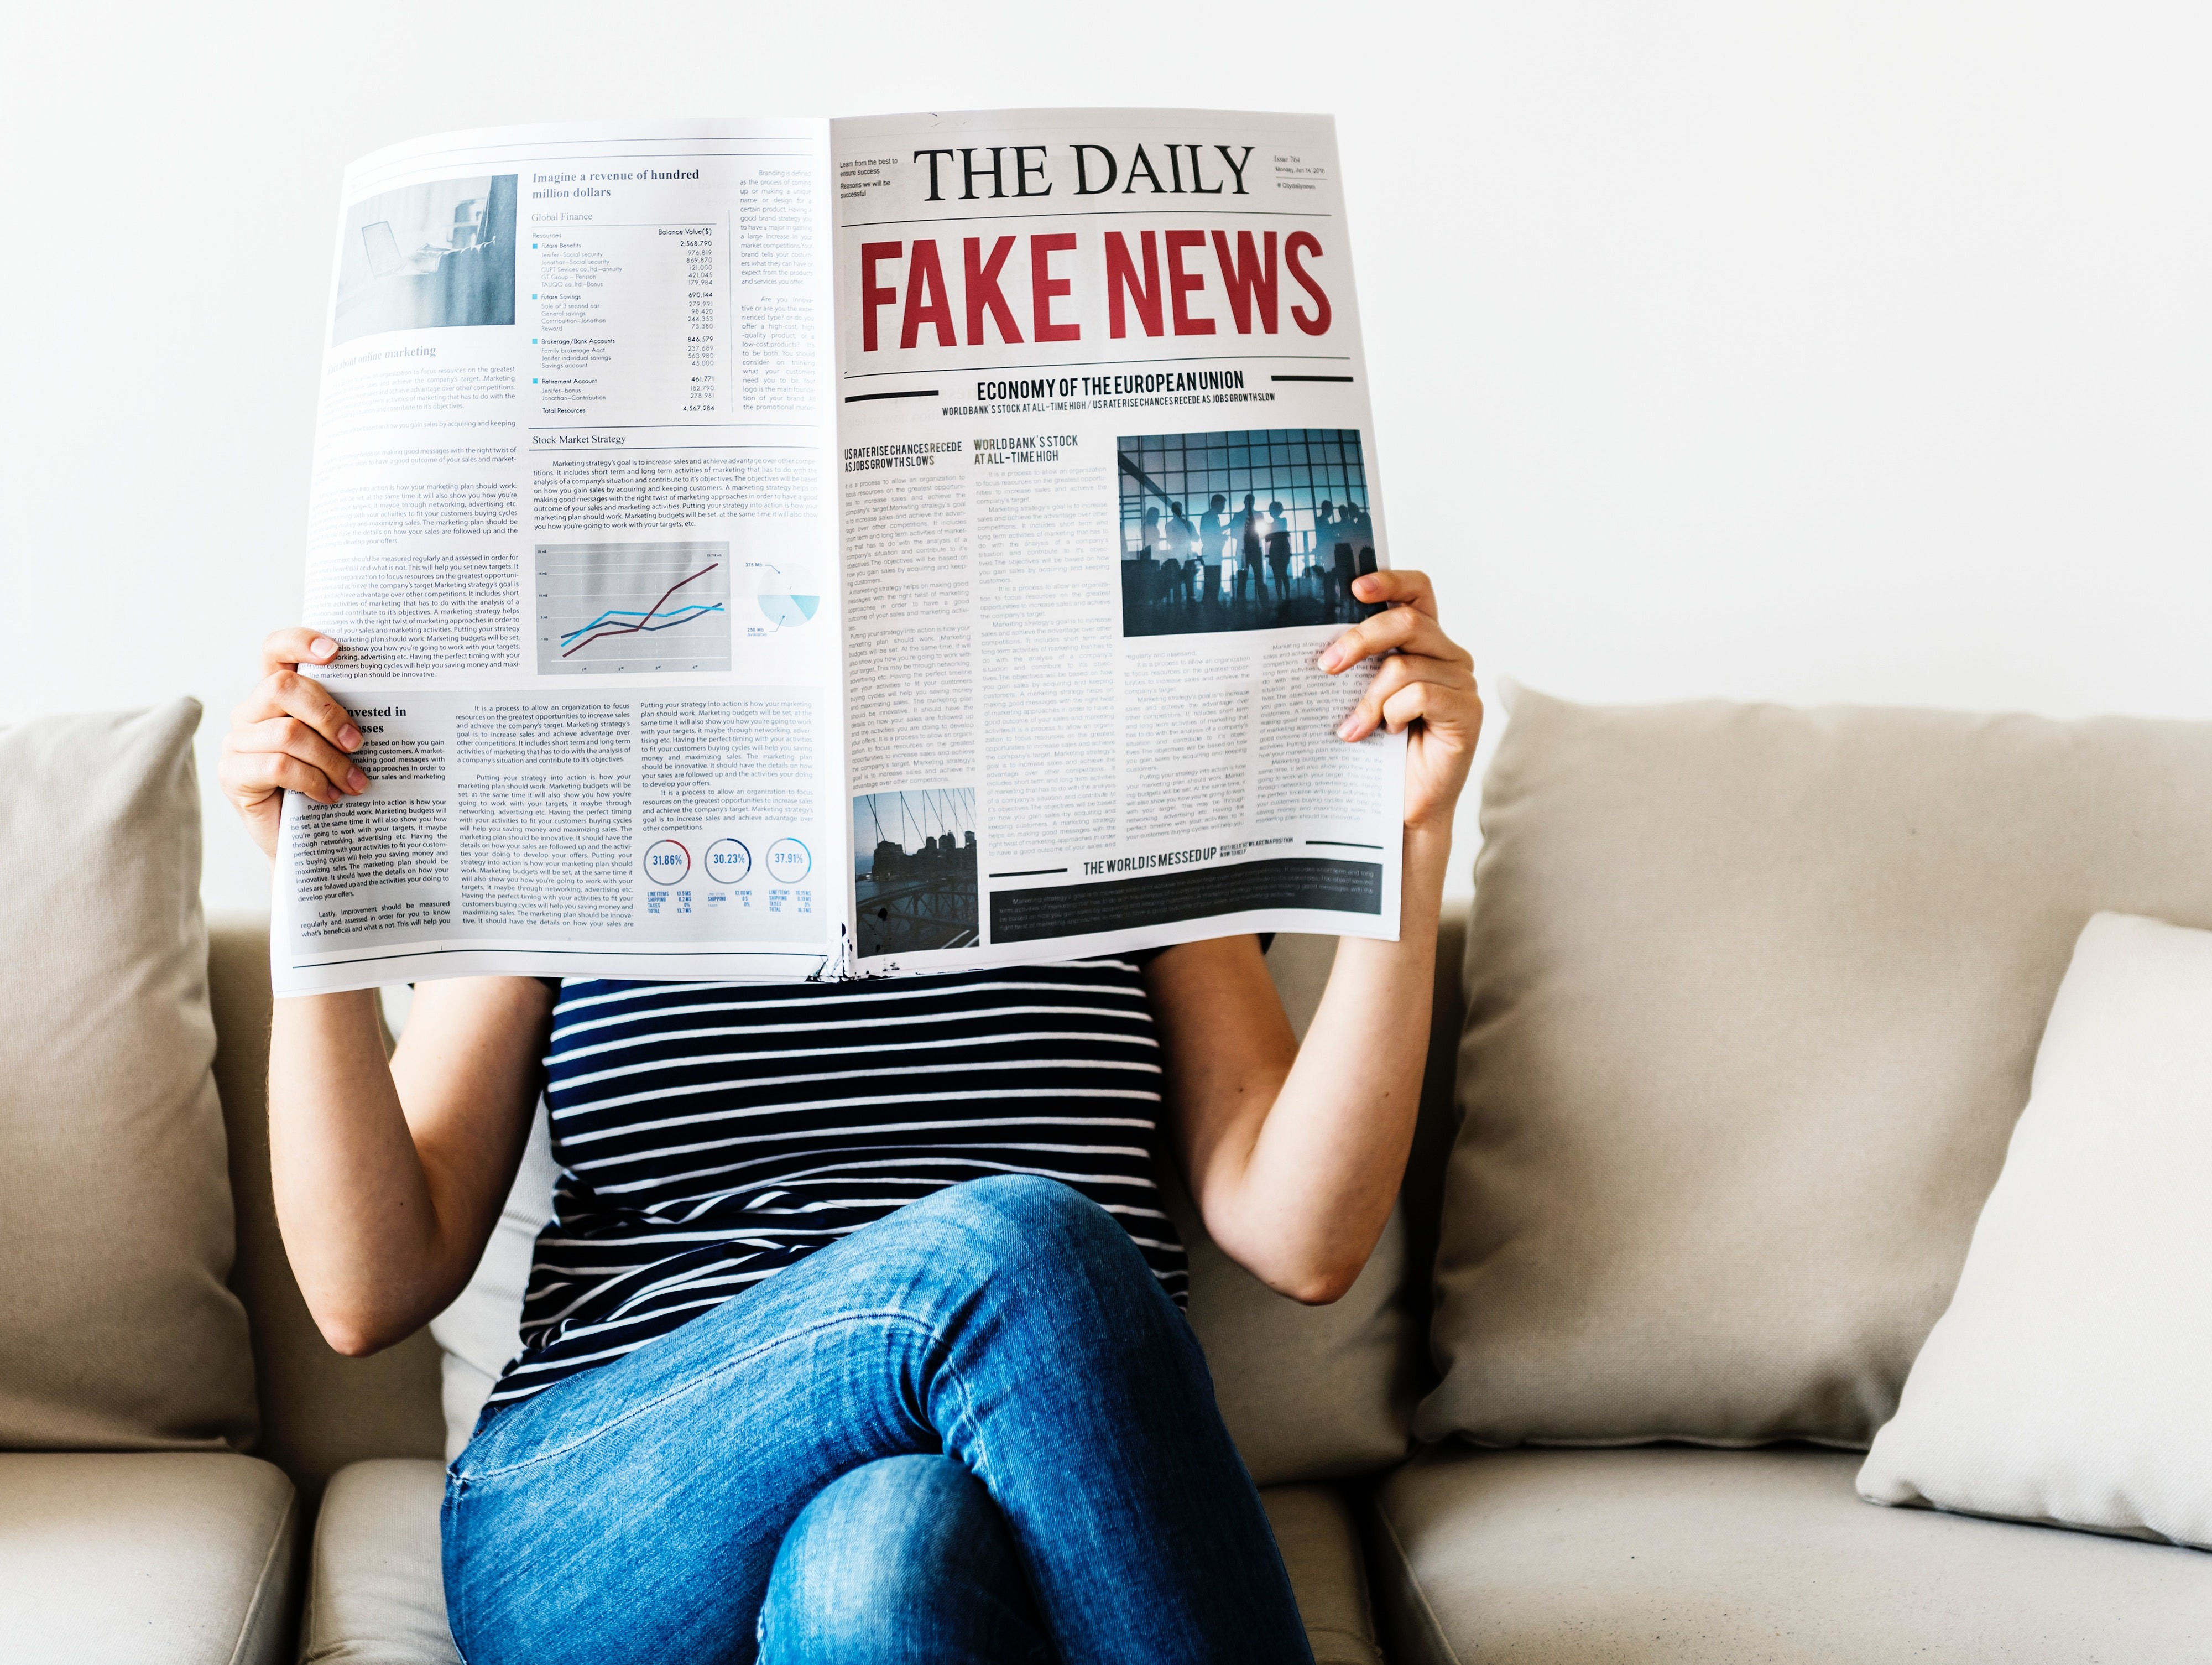 17-Year-Old Creates an Unbiased News Source for Teens